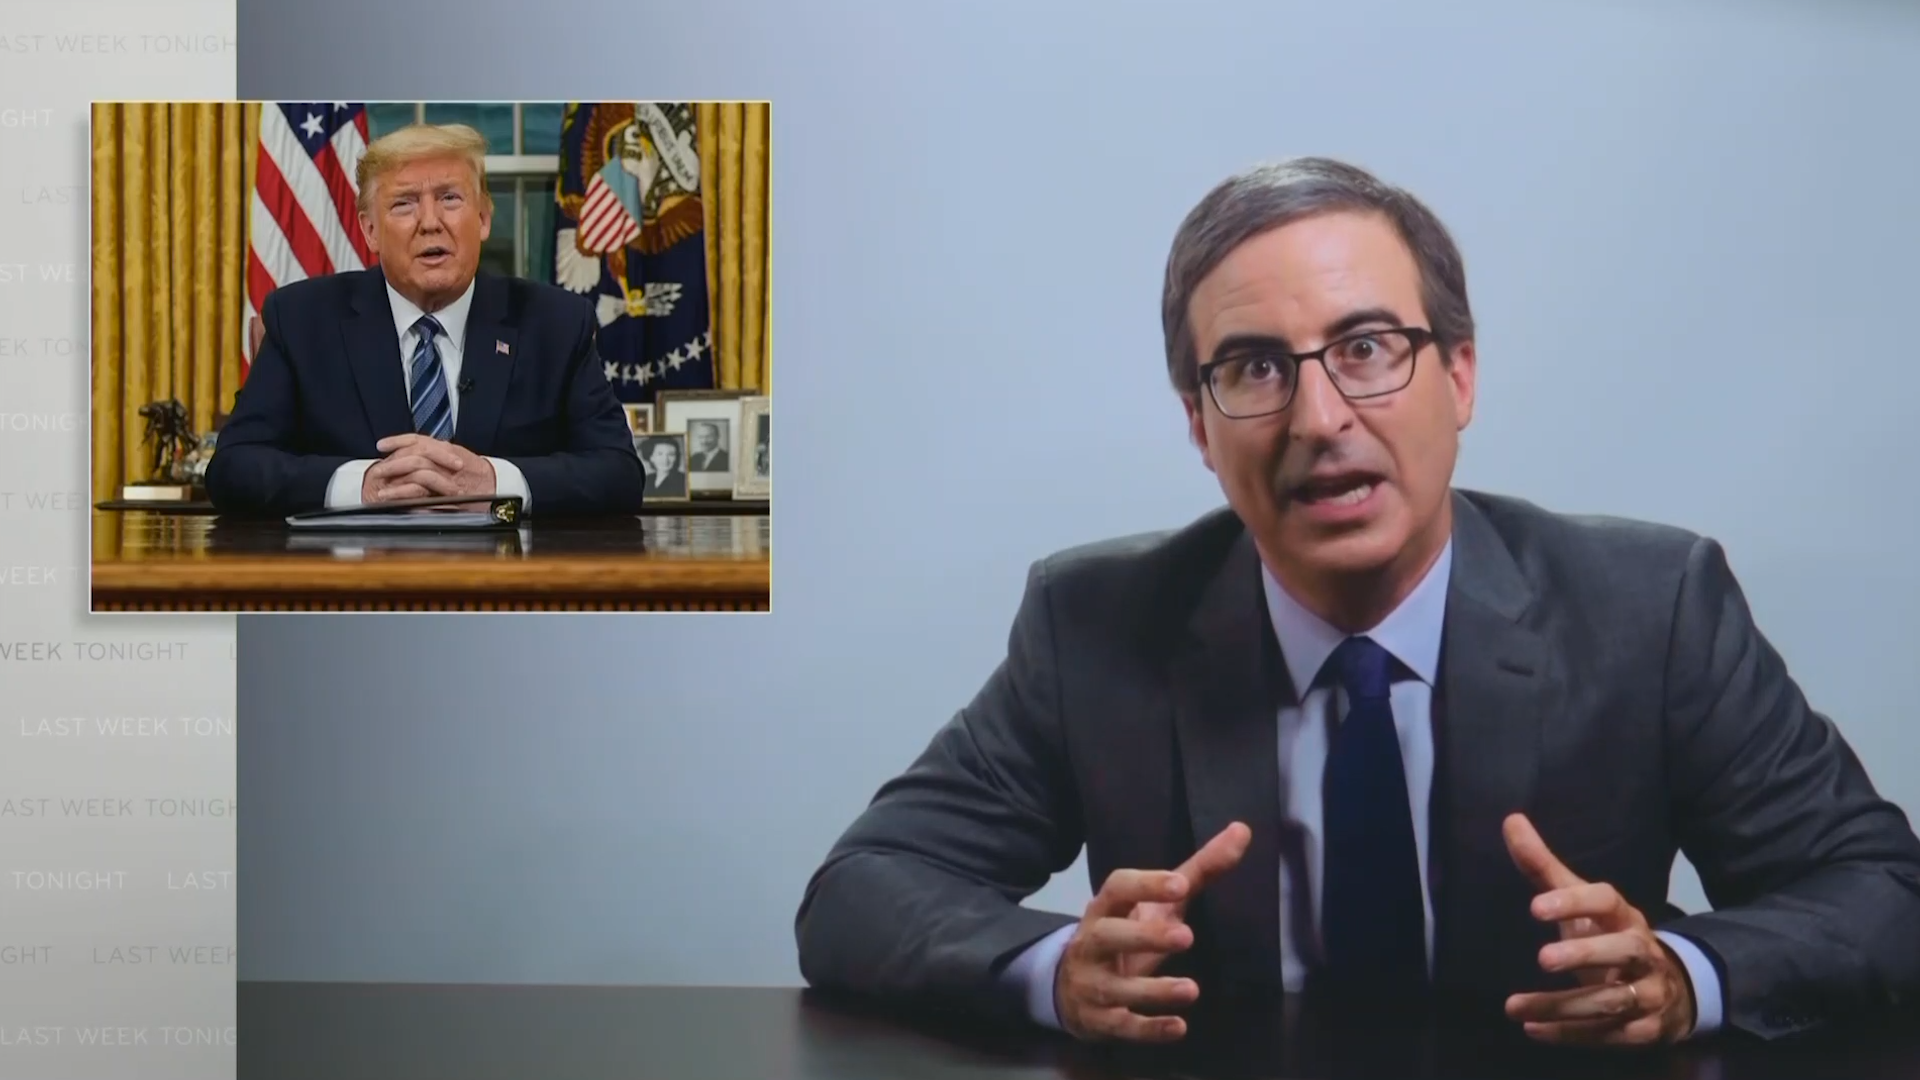 John Oliver slams Trump for pushing conspiracy theories about coronavirus [Video]